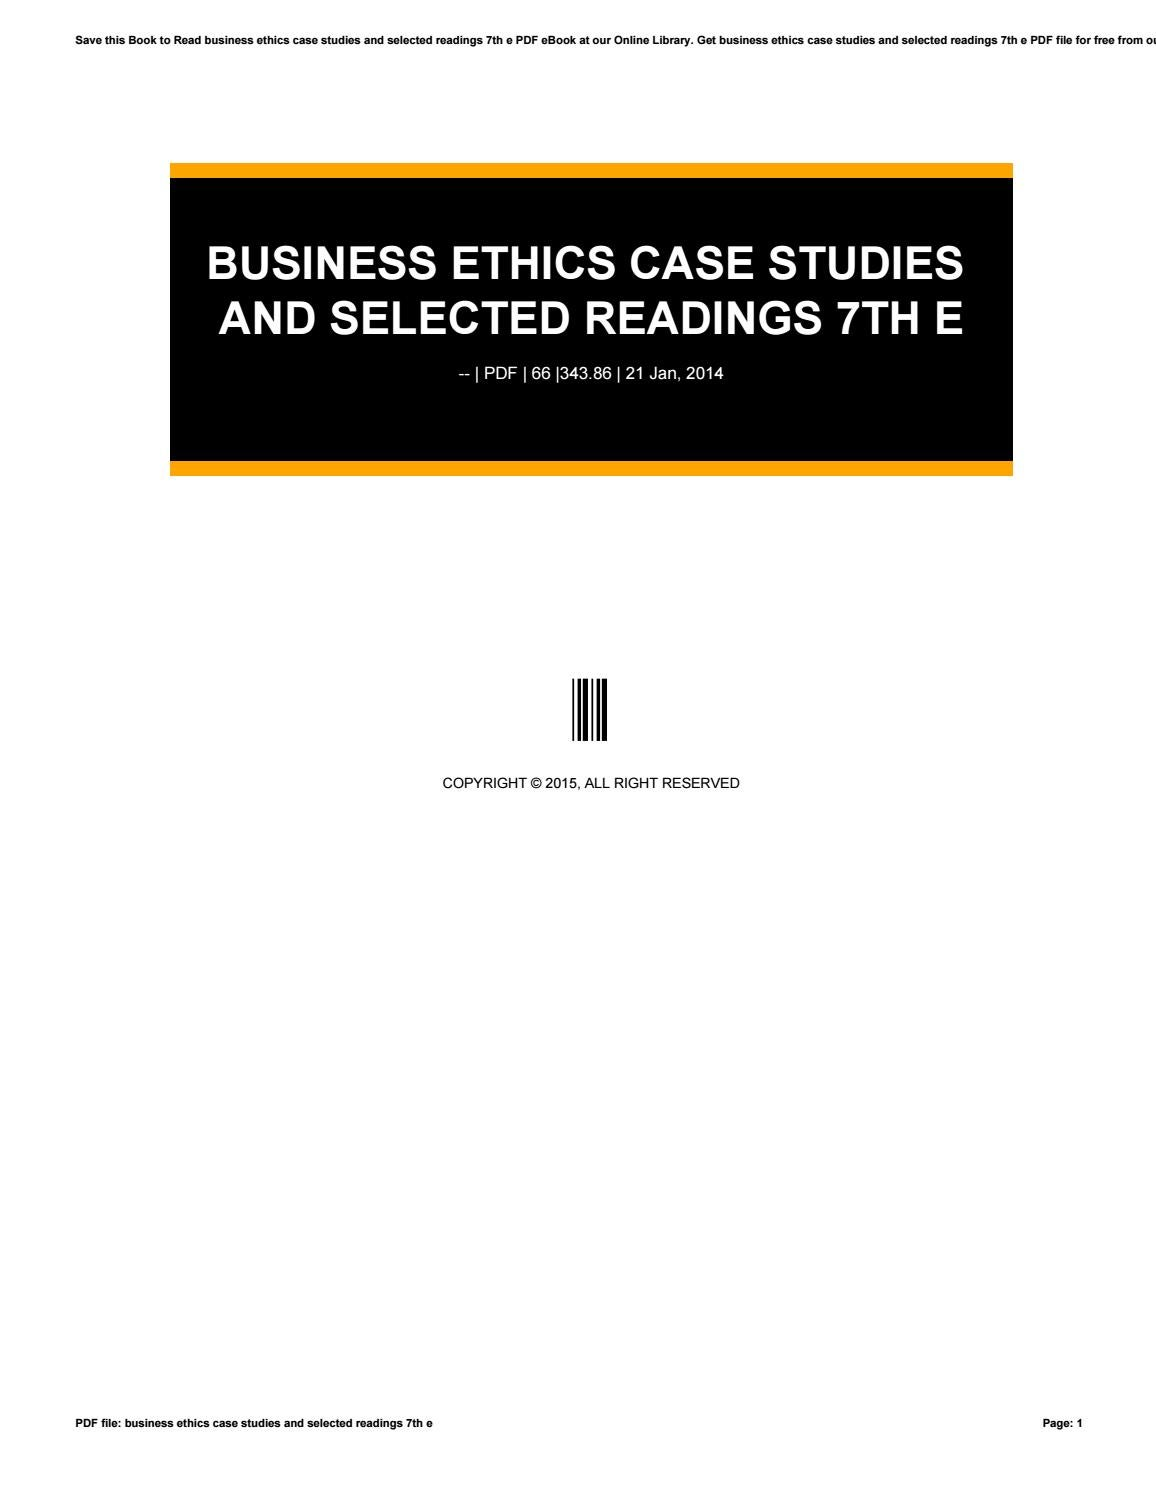 Read business ethics: case studies and selected readings 7th.